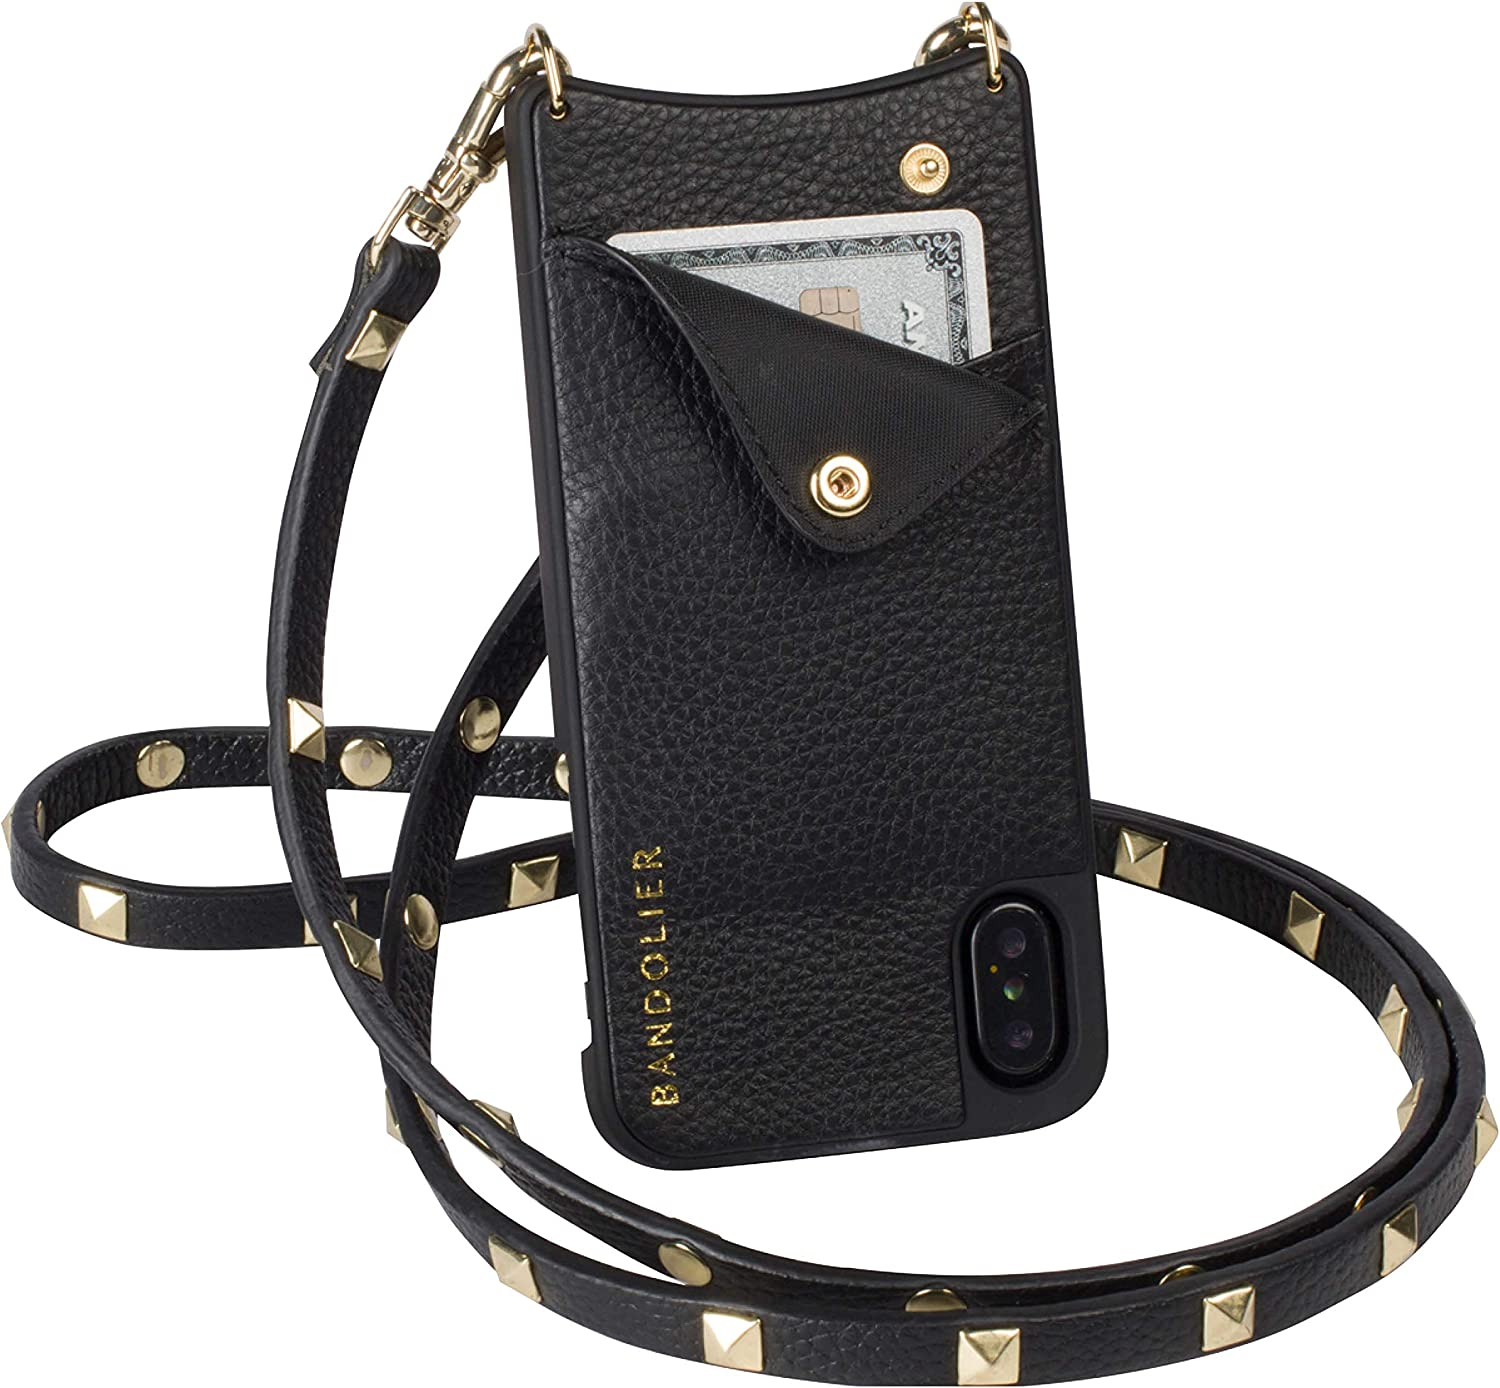 Bandolier Sarah Crossbody Phone Case and Wallet - Black Leather with Gold Detail - Compatible with iPhone SE / 8, 7, 6 Only